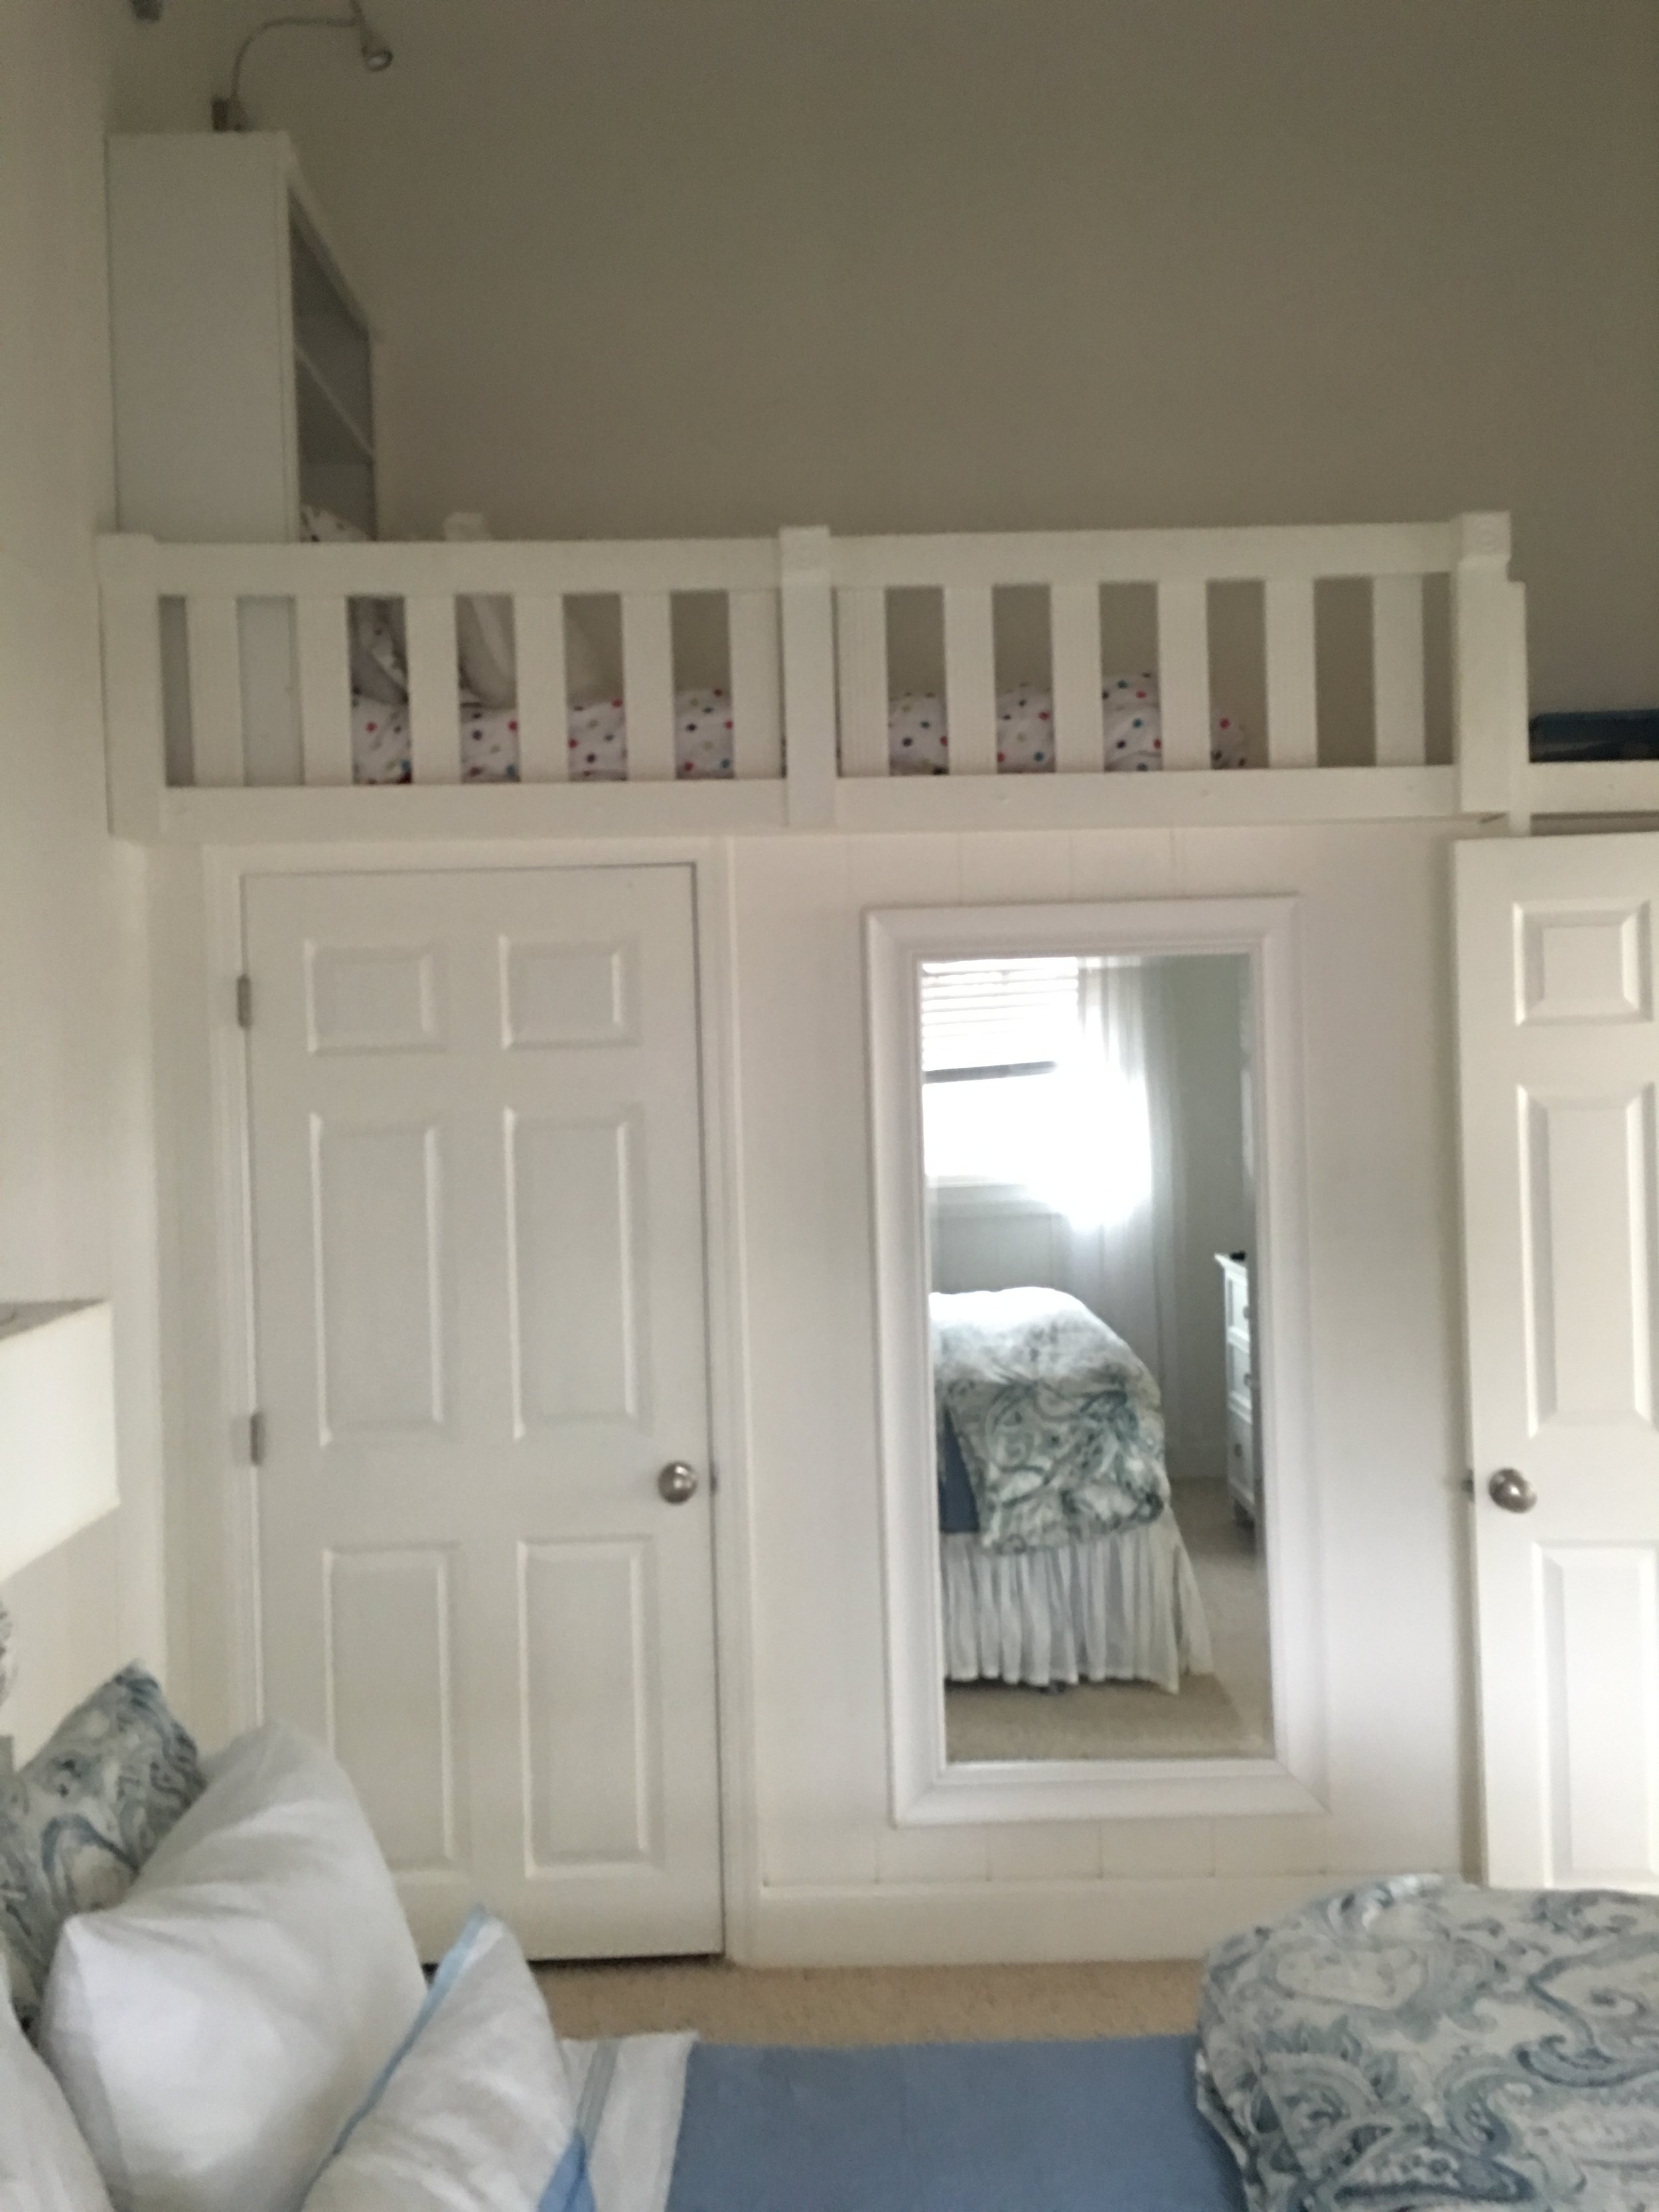 Pacific Northwest Beach House Vacation Rental that's family friendly